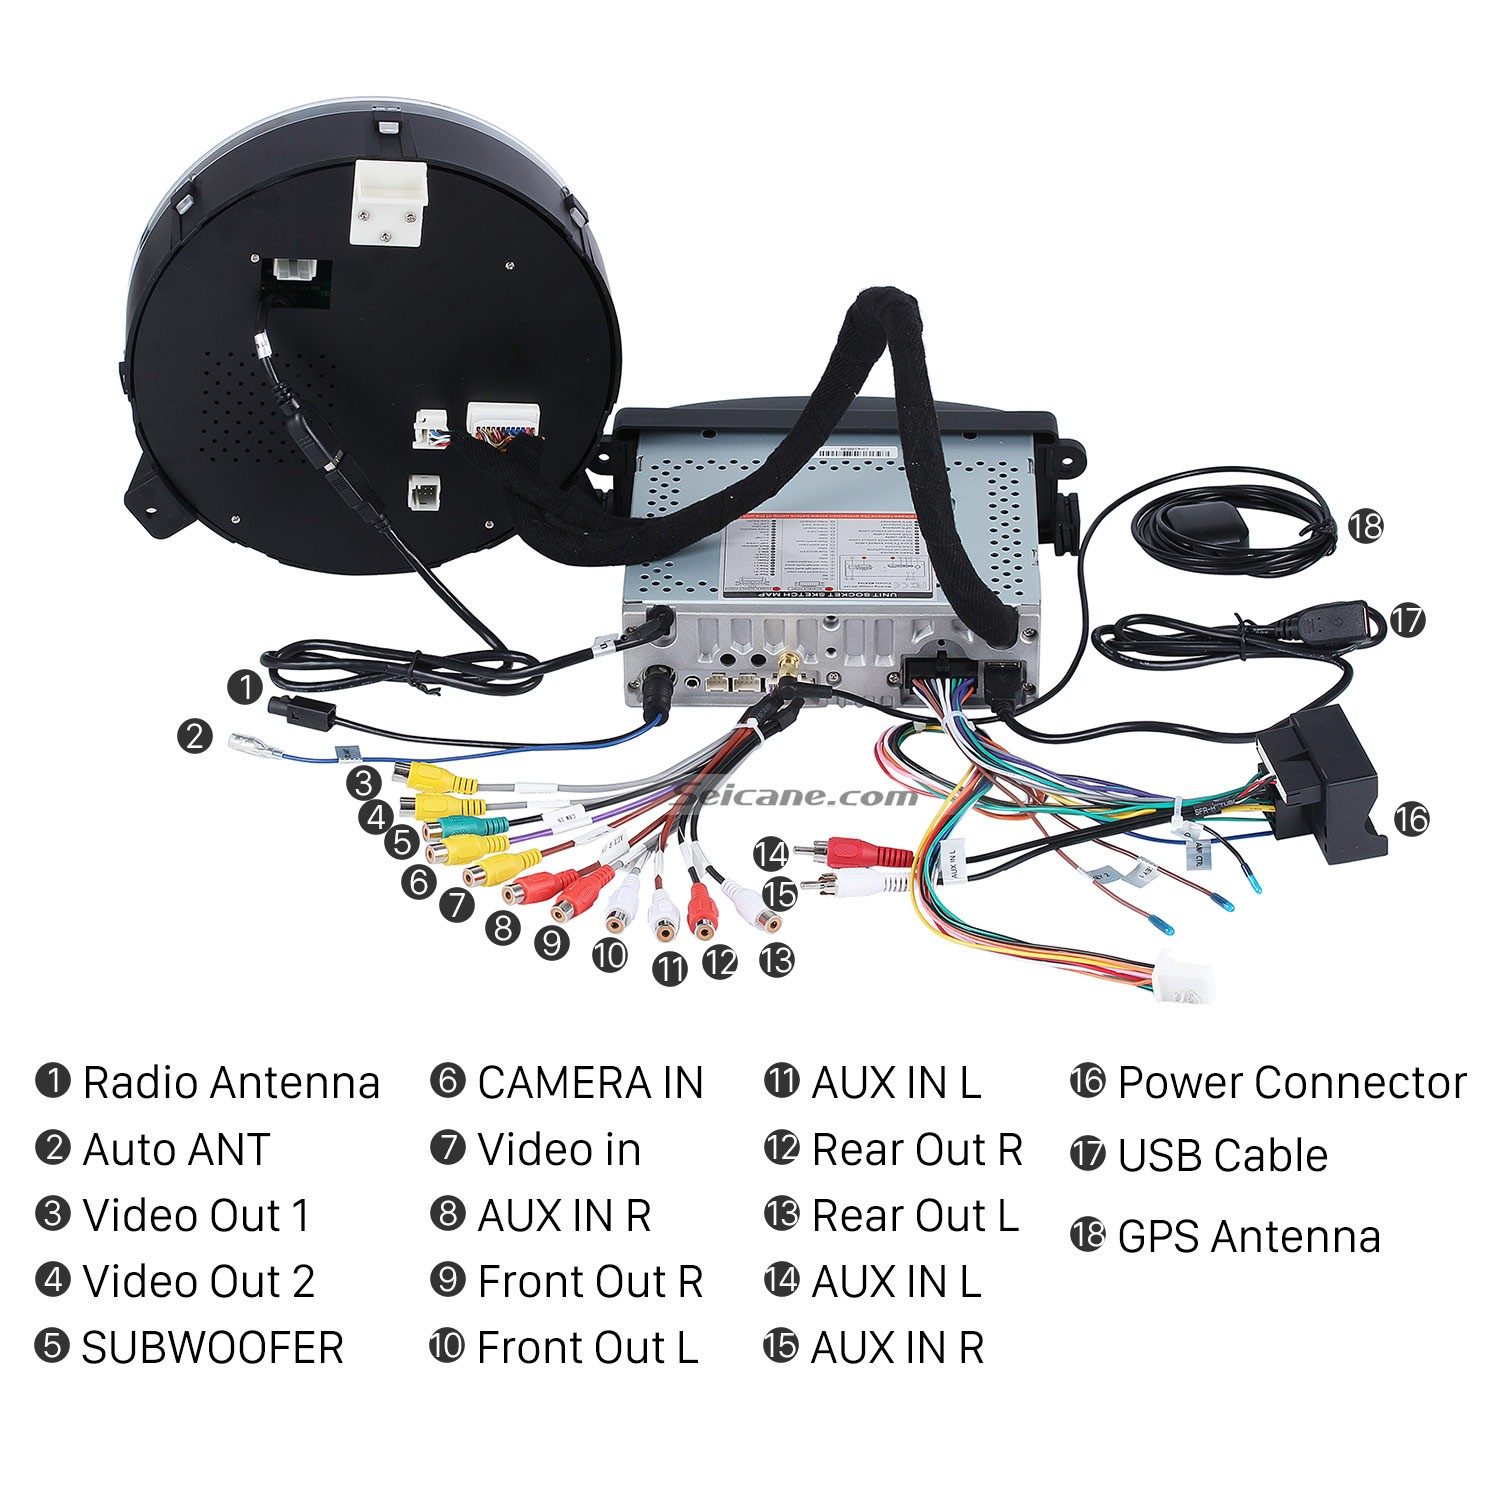 hight resolution of 2013 mini cooper stereo wiring wiring diagram mini cooper stereo wiring 2006 2013 bmw mini cooper